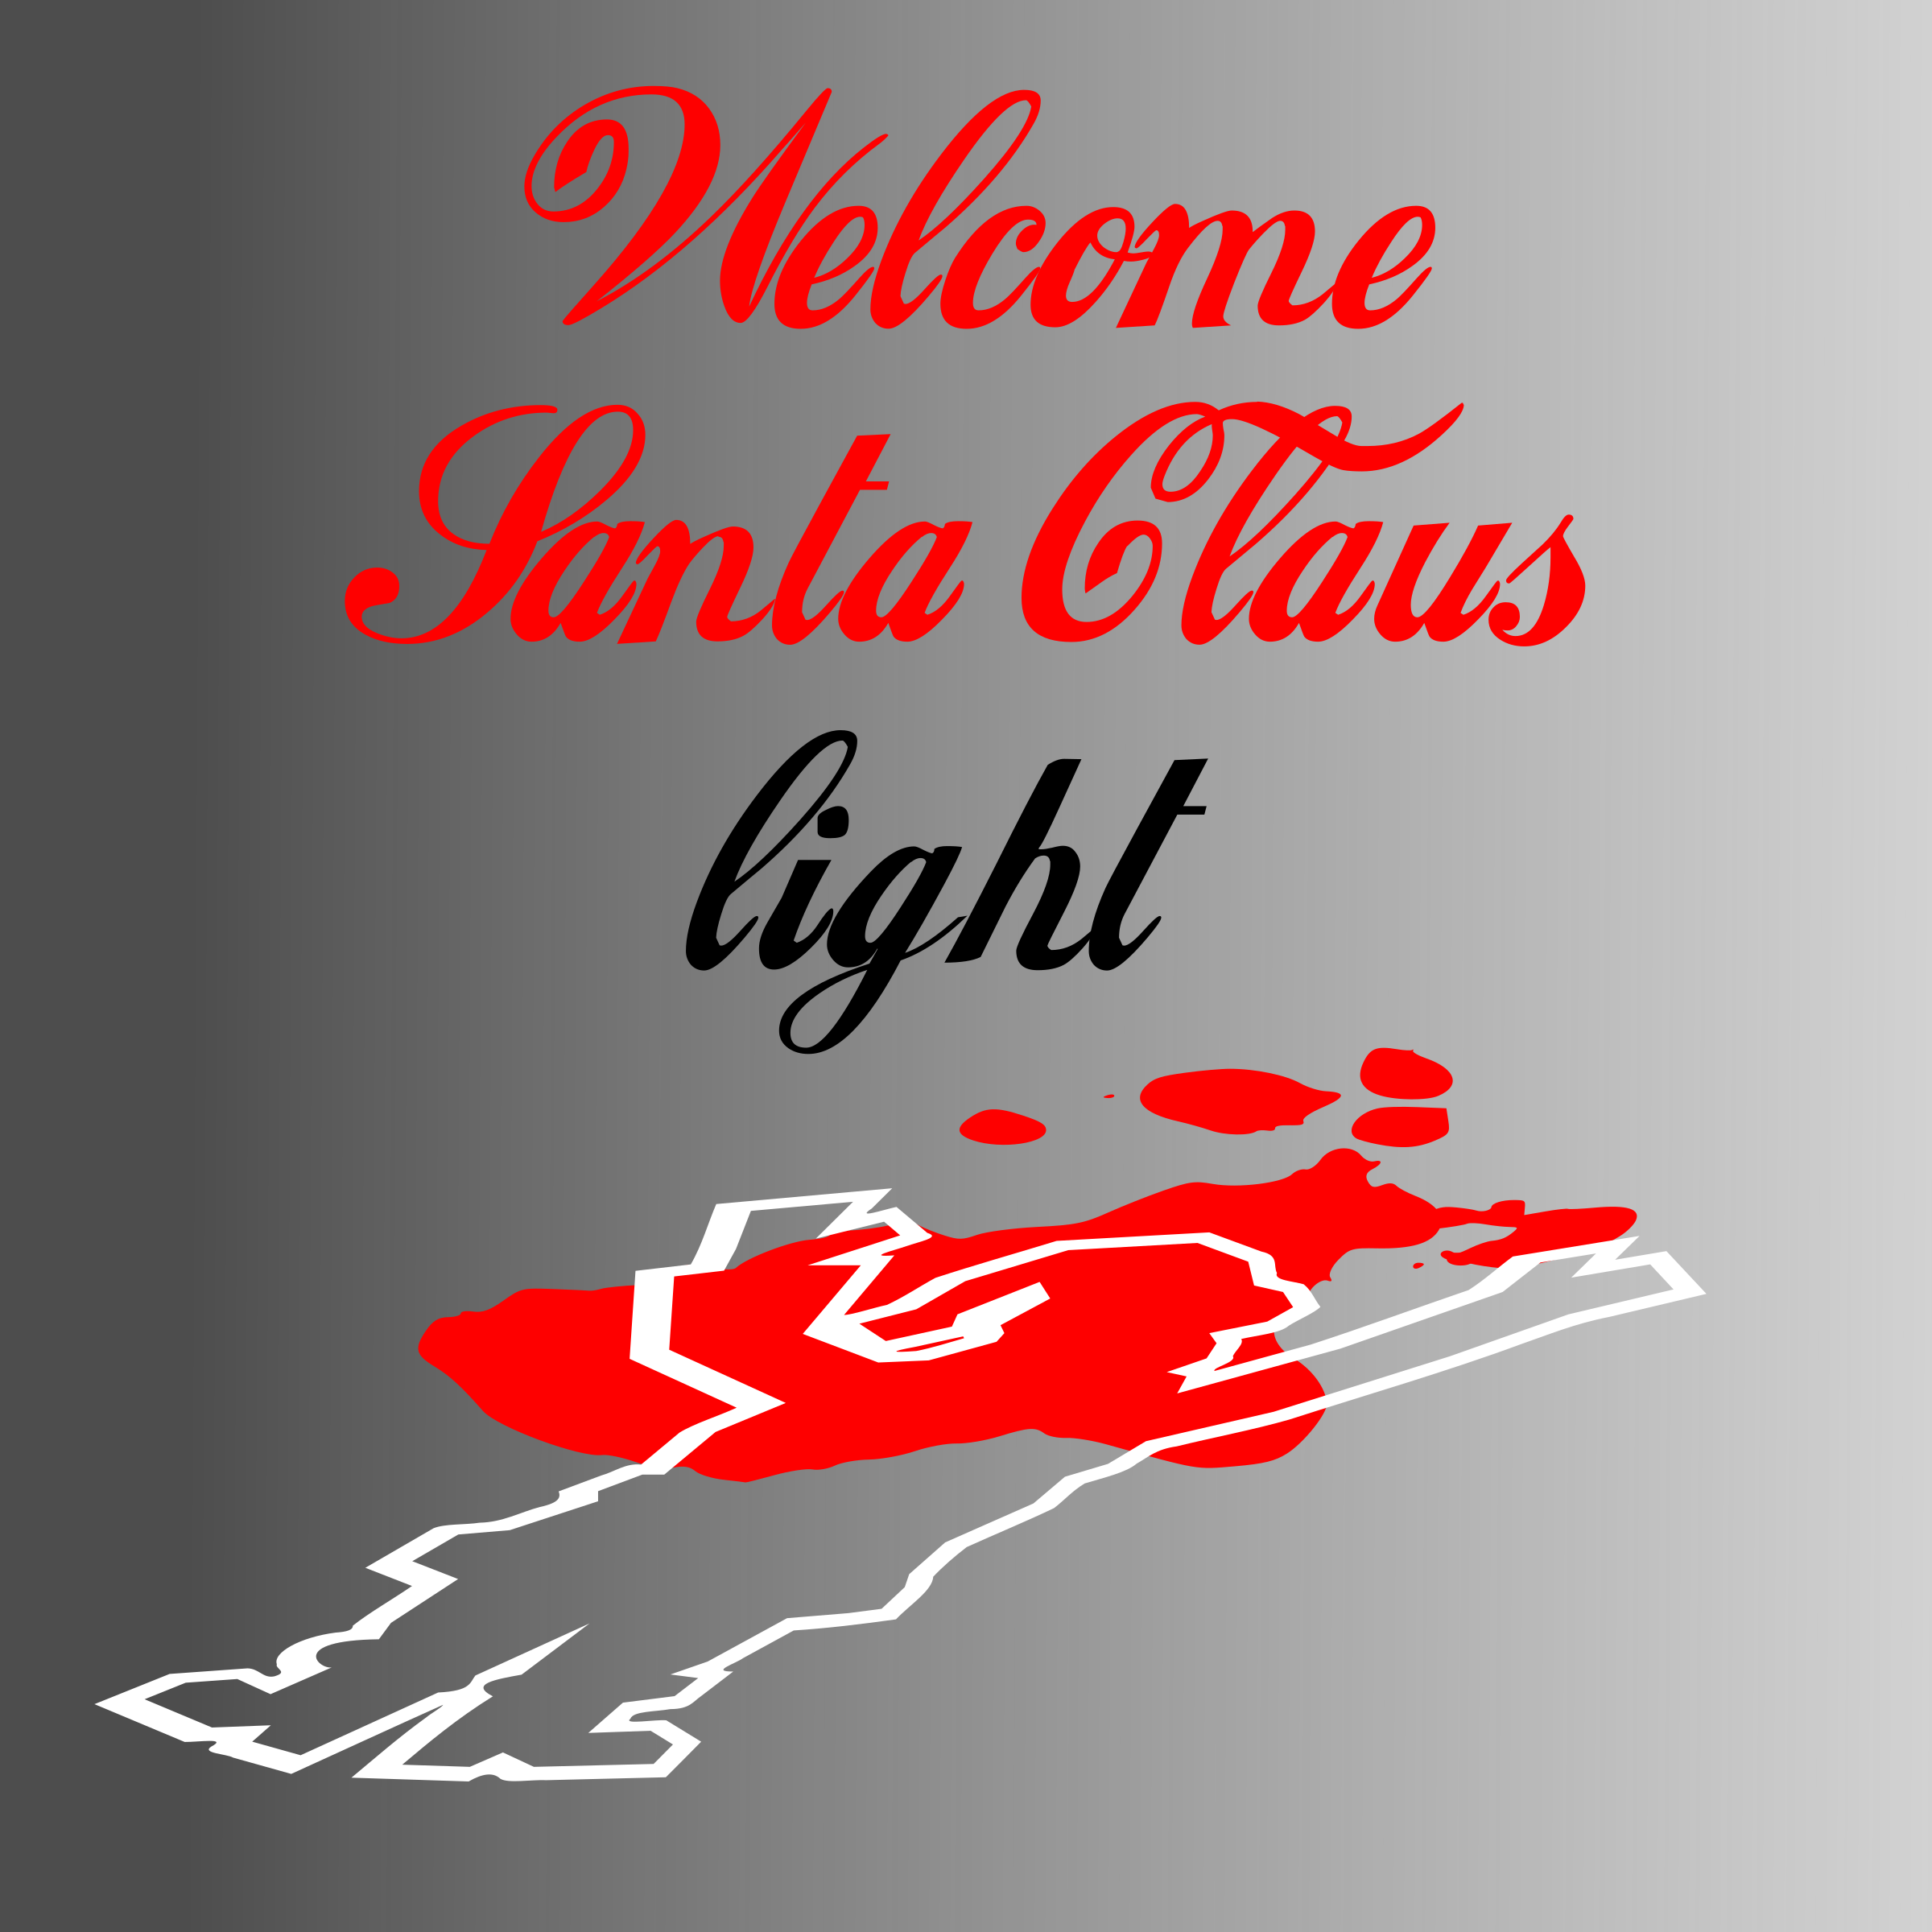 Welcome Santa Claus Light by picapica